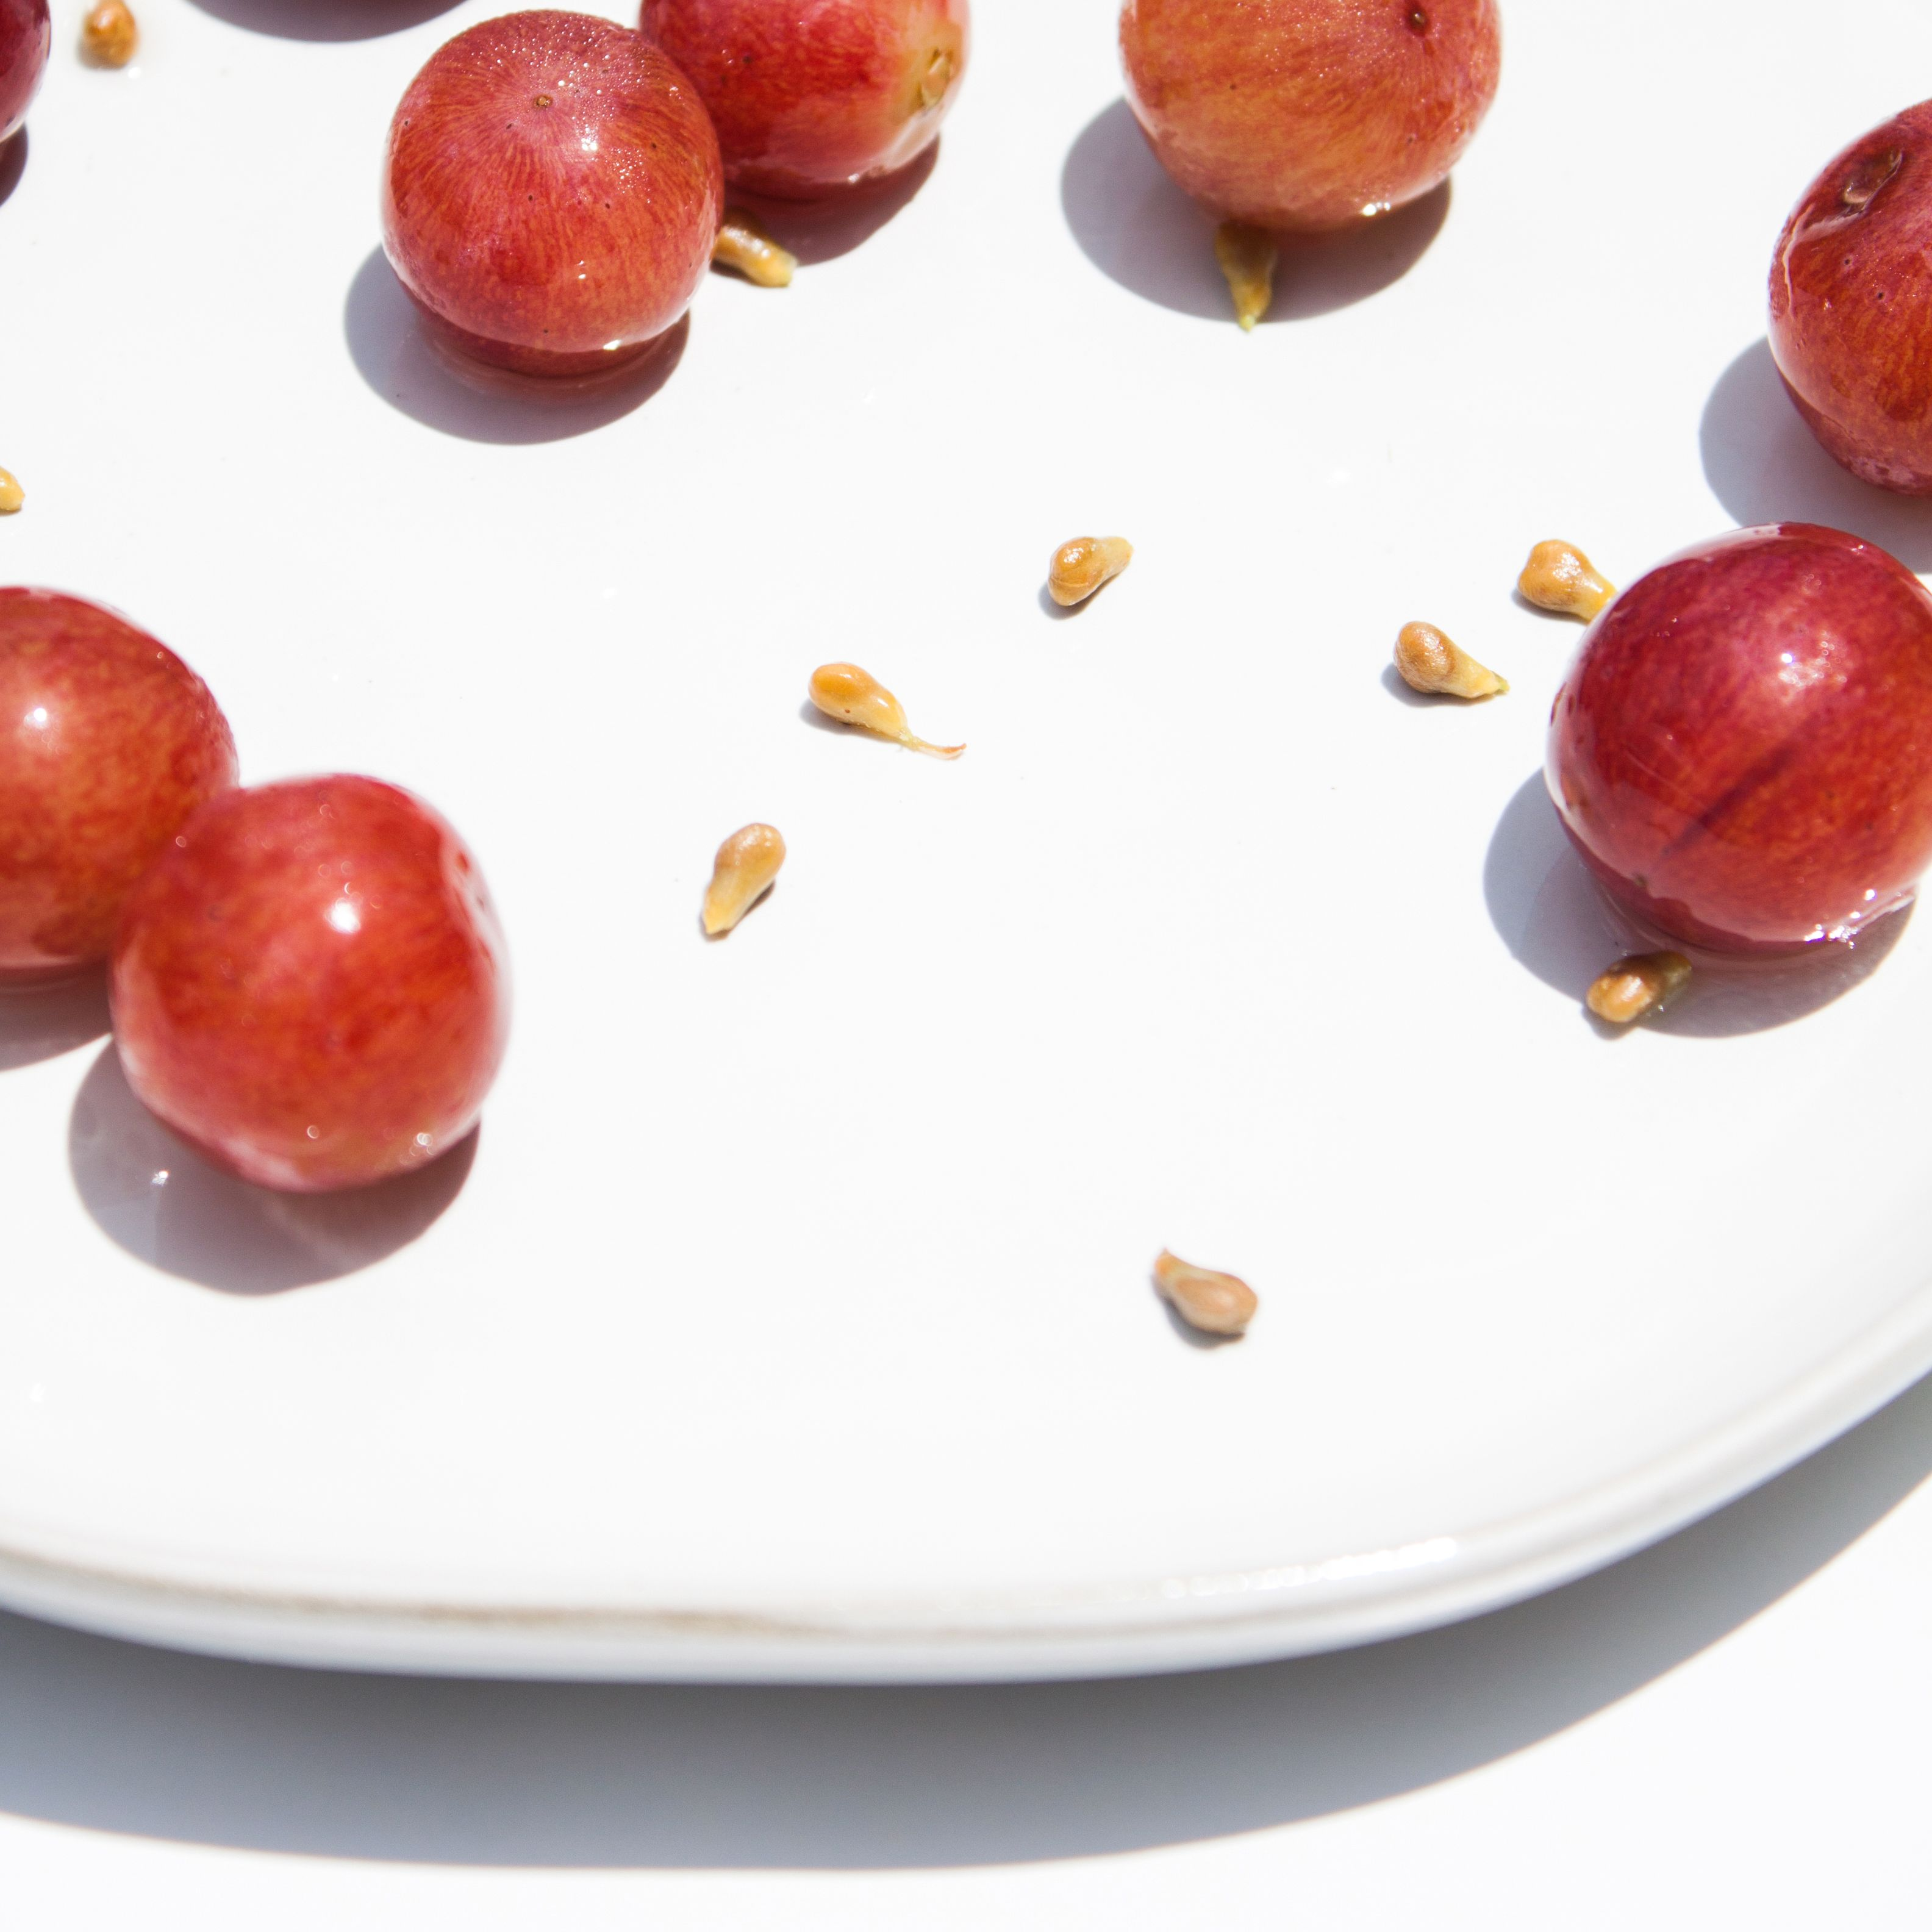 Vitis Vinifera Seed Extract Grape Seed Extract Skincare Ingredients Seed Extract